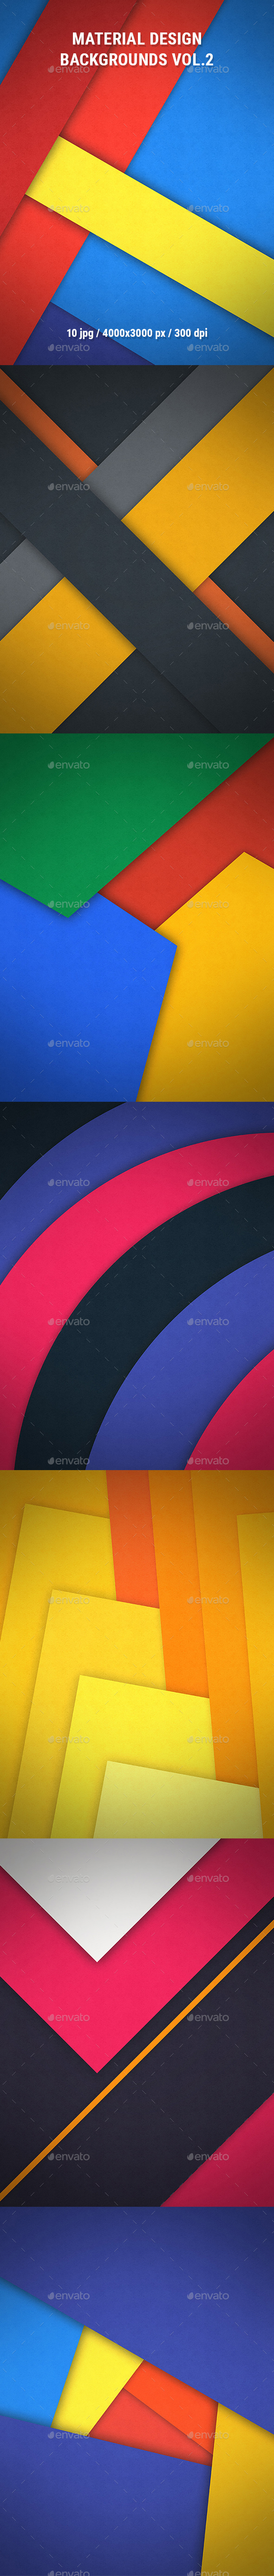 Material Design Backgrounds Vol.2 - Abstract Backgrounds